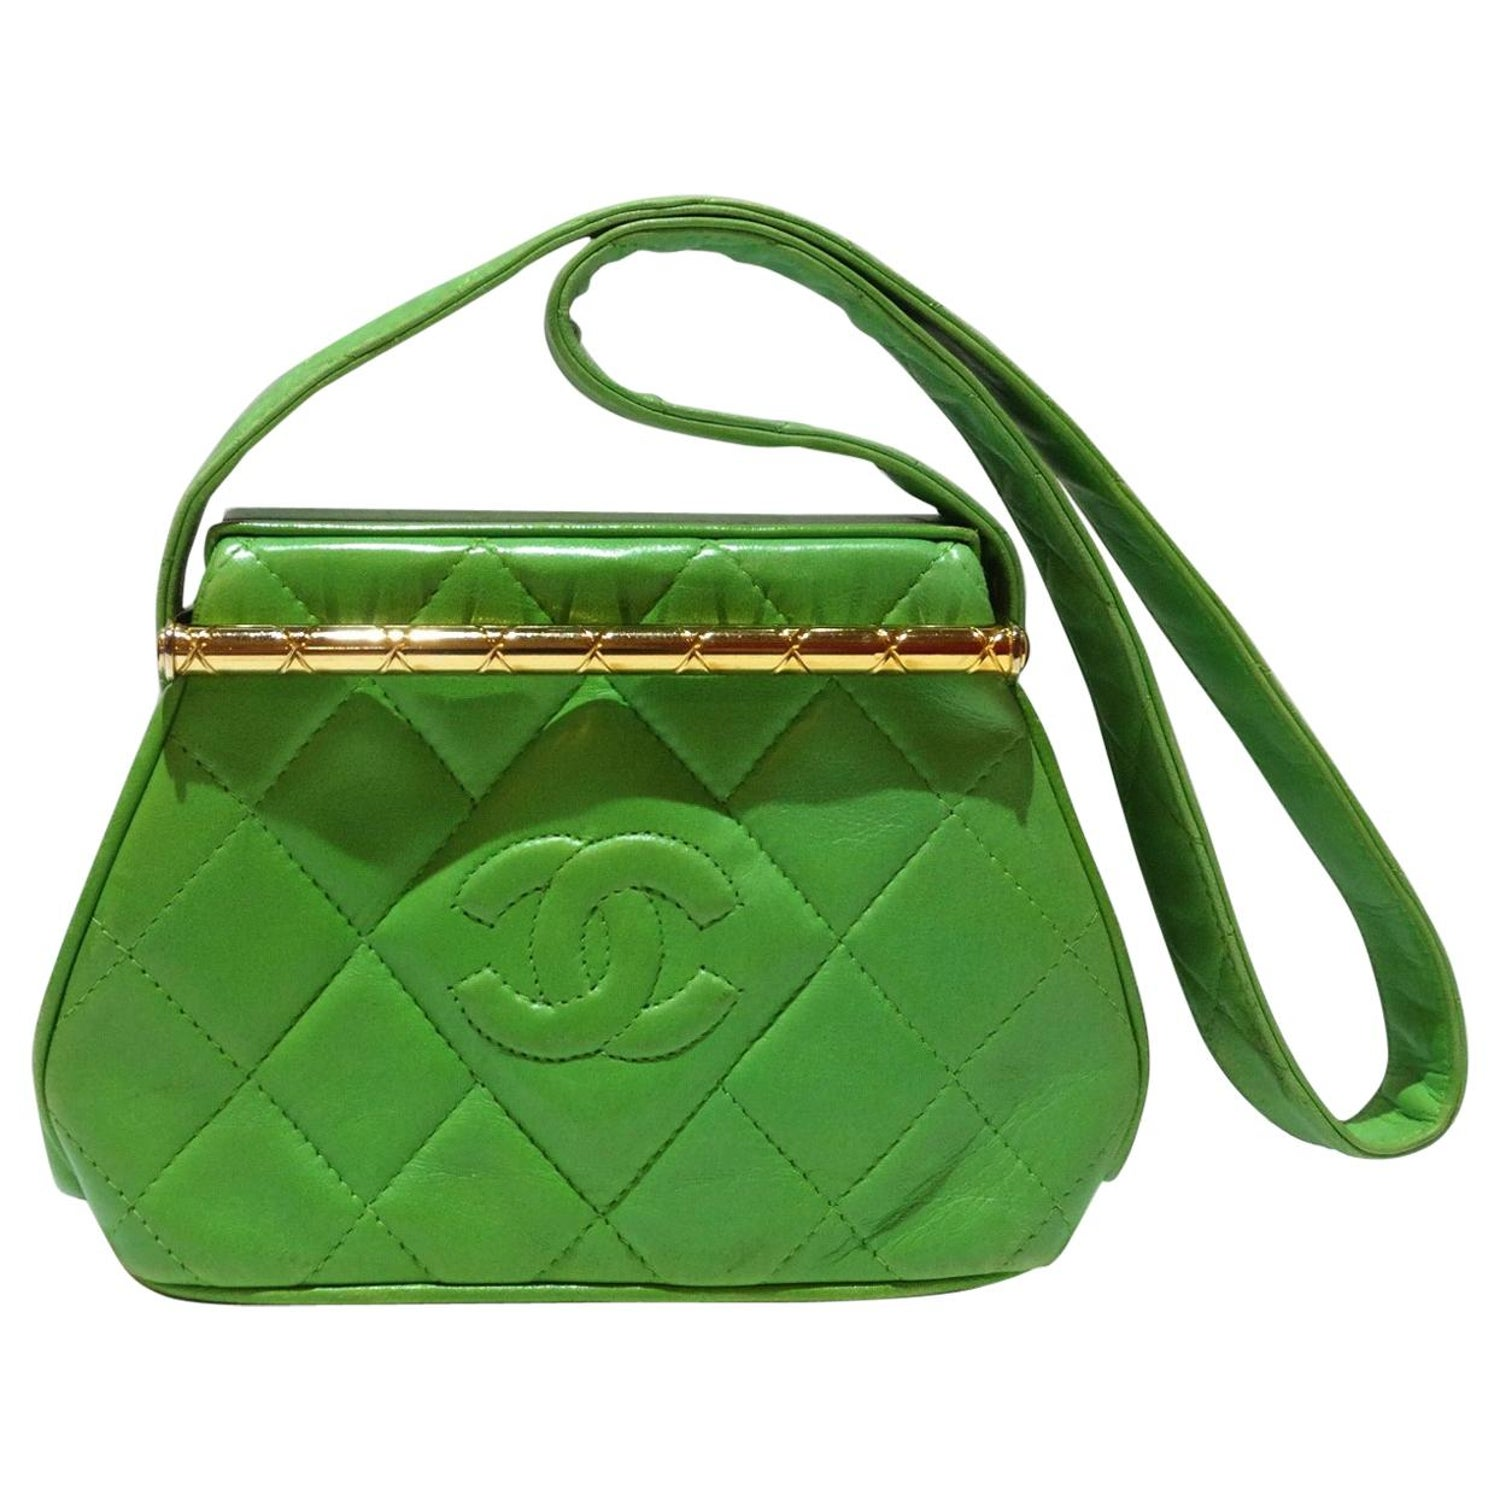 989e21614e14 1989 Chanel Kelly Green Quilted Handbag For Sale at 1stdibs